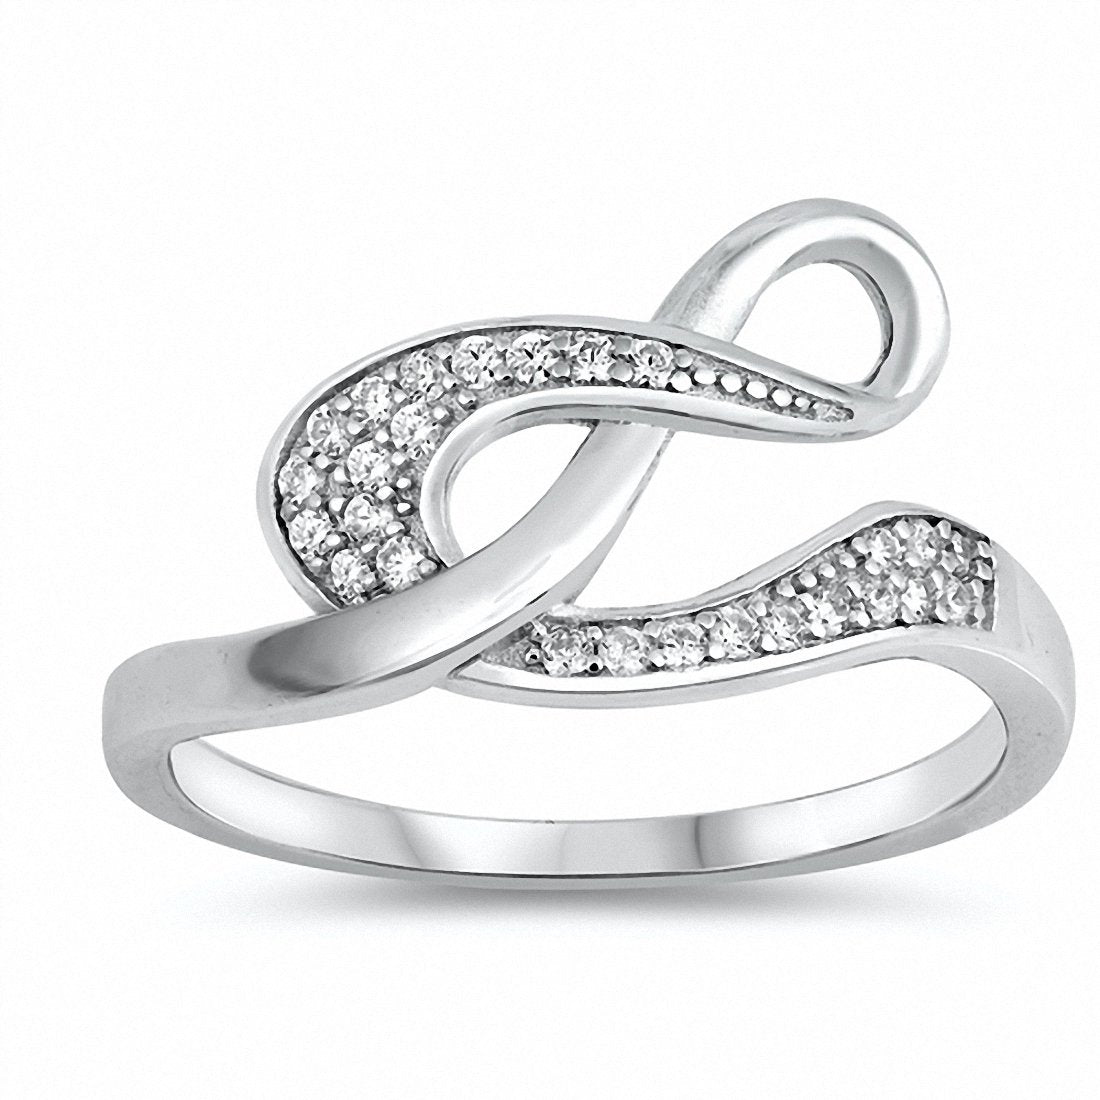 New Design Fashion Infinity Ring Round Cubic Zirconia 925 Sterling Silver Choose Color